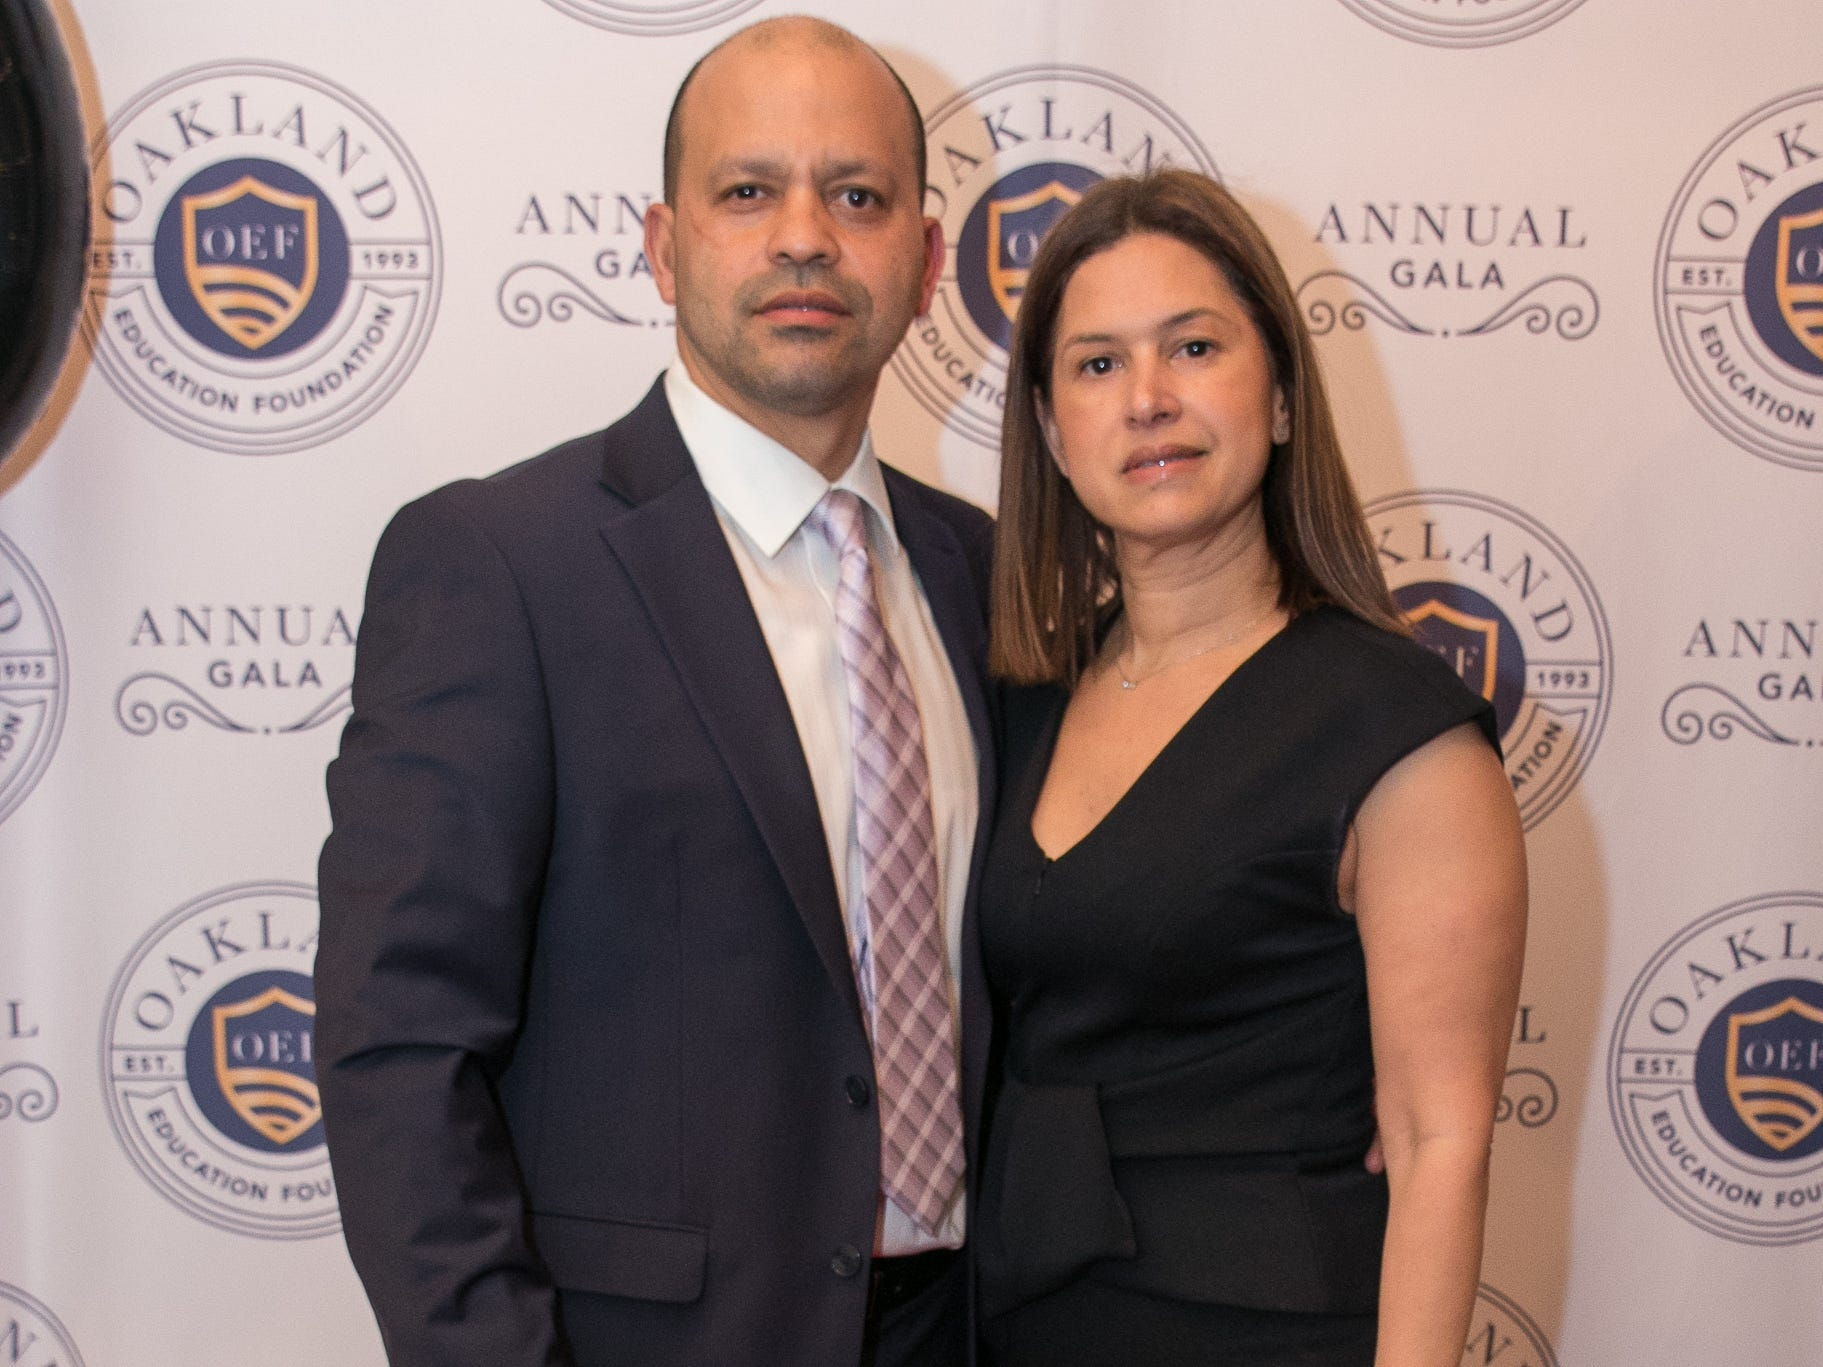 The Oakland Education Foundation held their 25th Anniversary Casino Night Gala at Preakness Hills Country Club in Wayne. 03/16/2019